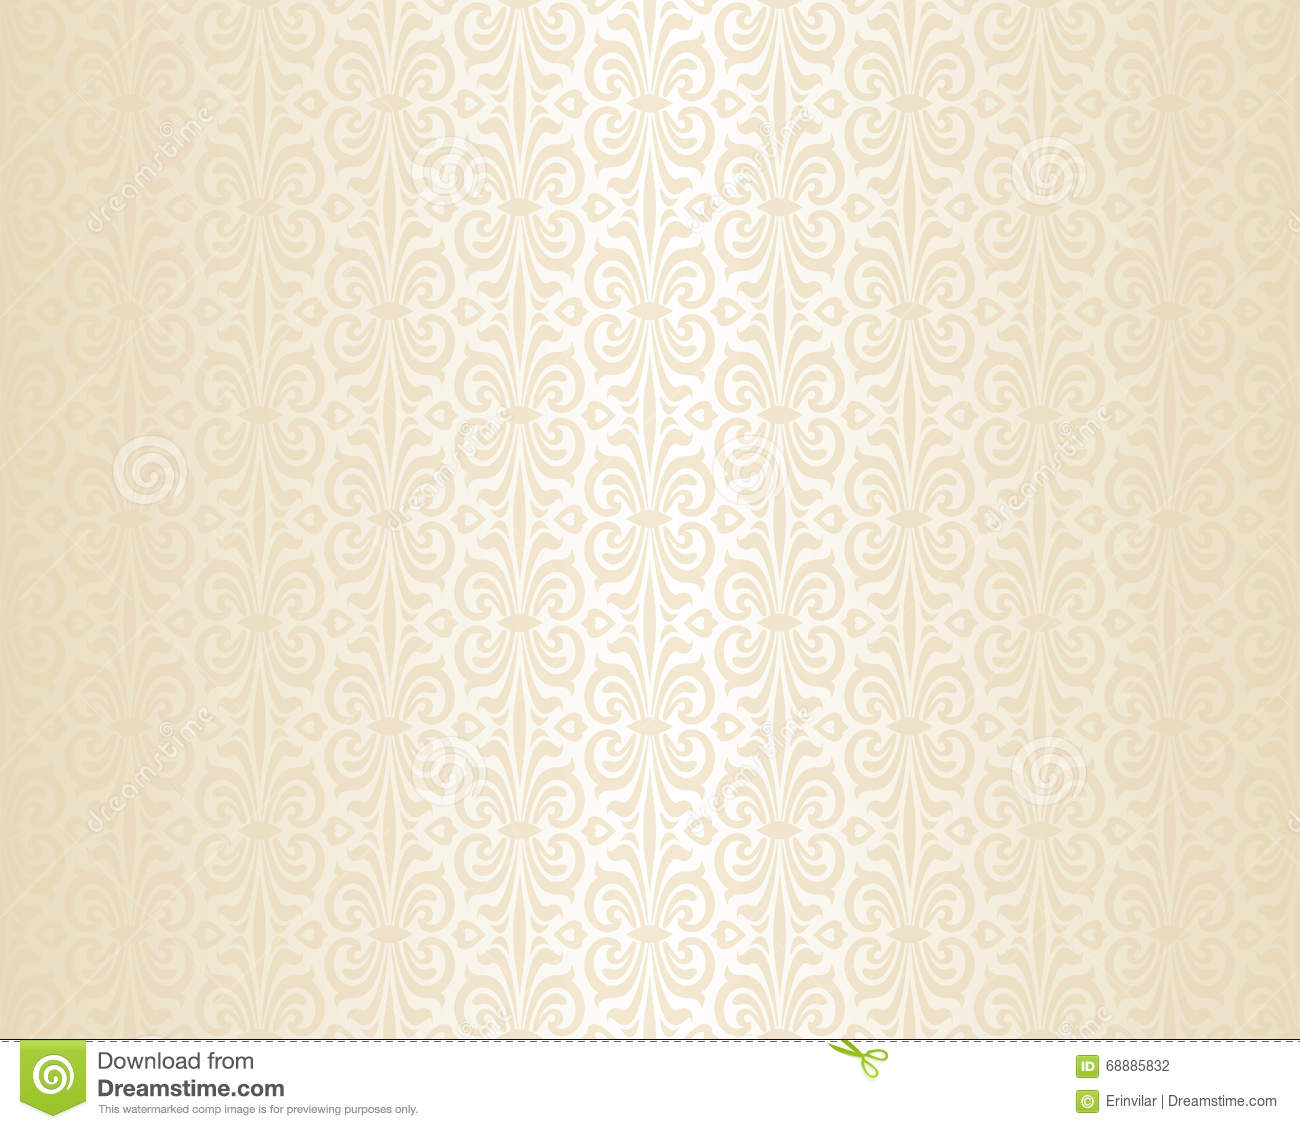 bright wedding beige luxury vintage wallpaper background stock vector illustration of color. Black Bedroom Furniture Sets. Home Design Ideas